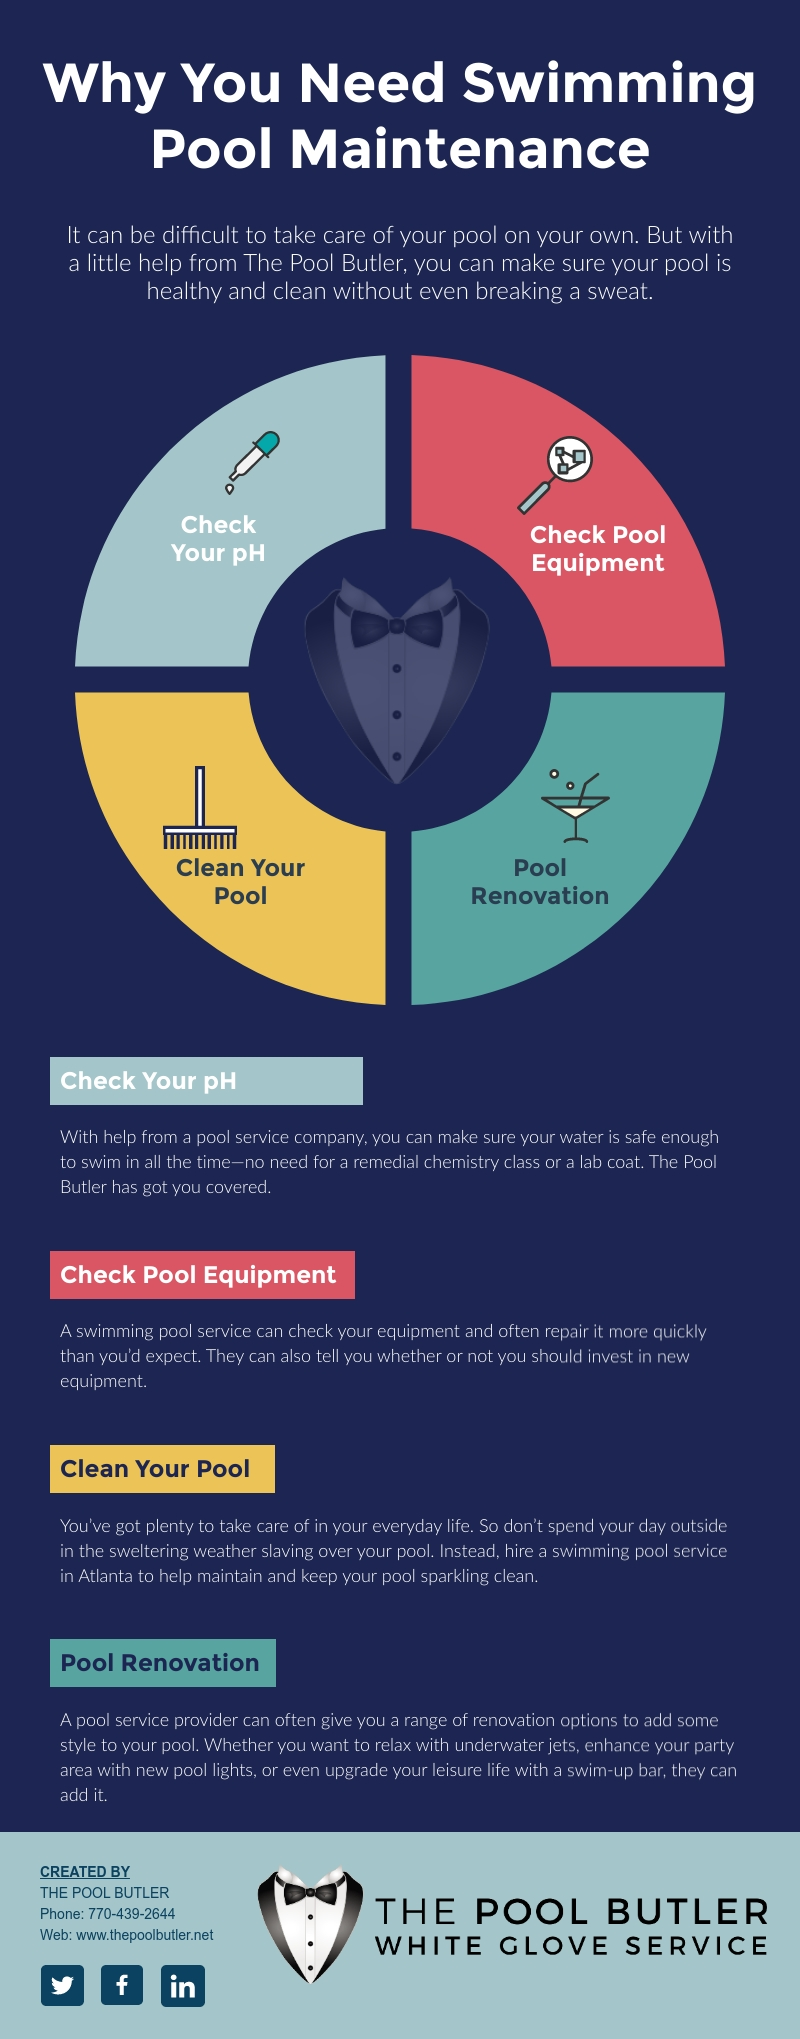 Why You Need Swimming Pool Maintenance In Atlanta [infographic]